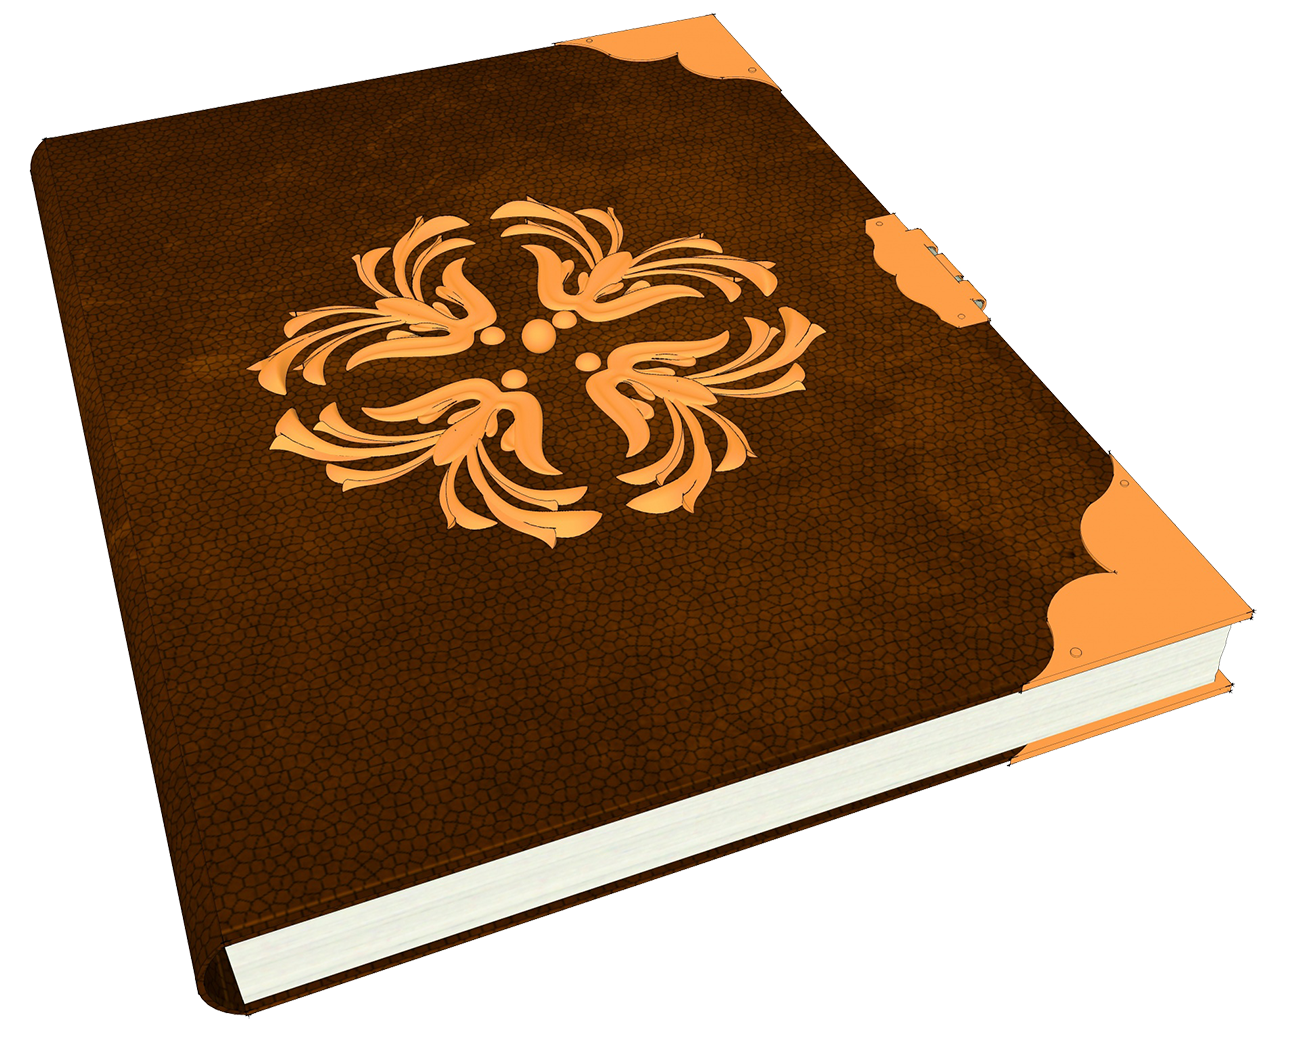 clipart of older book beatifully decorated